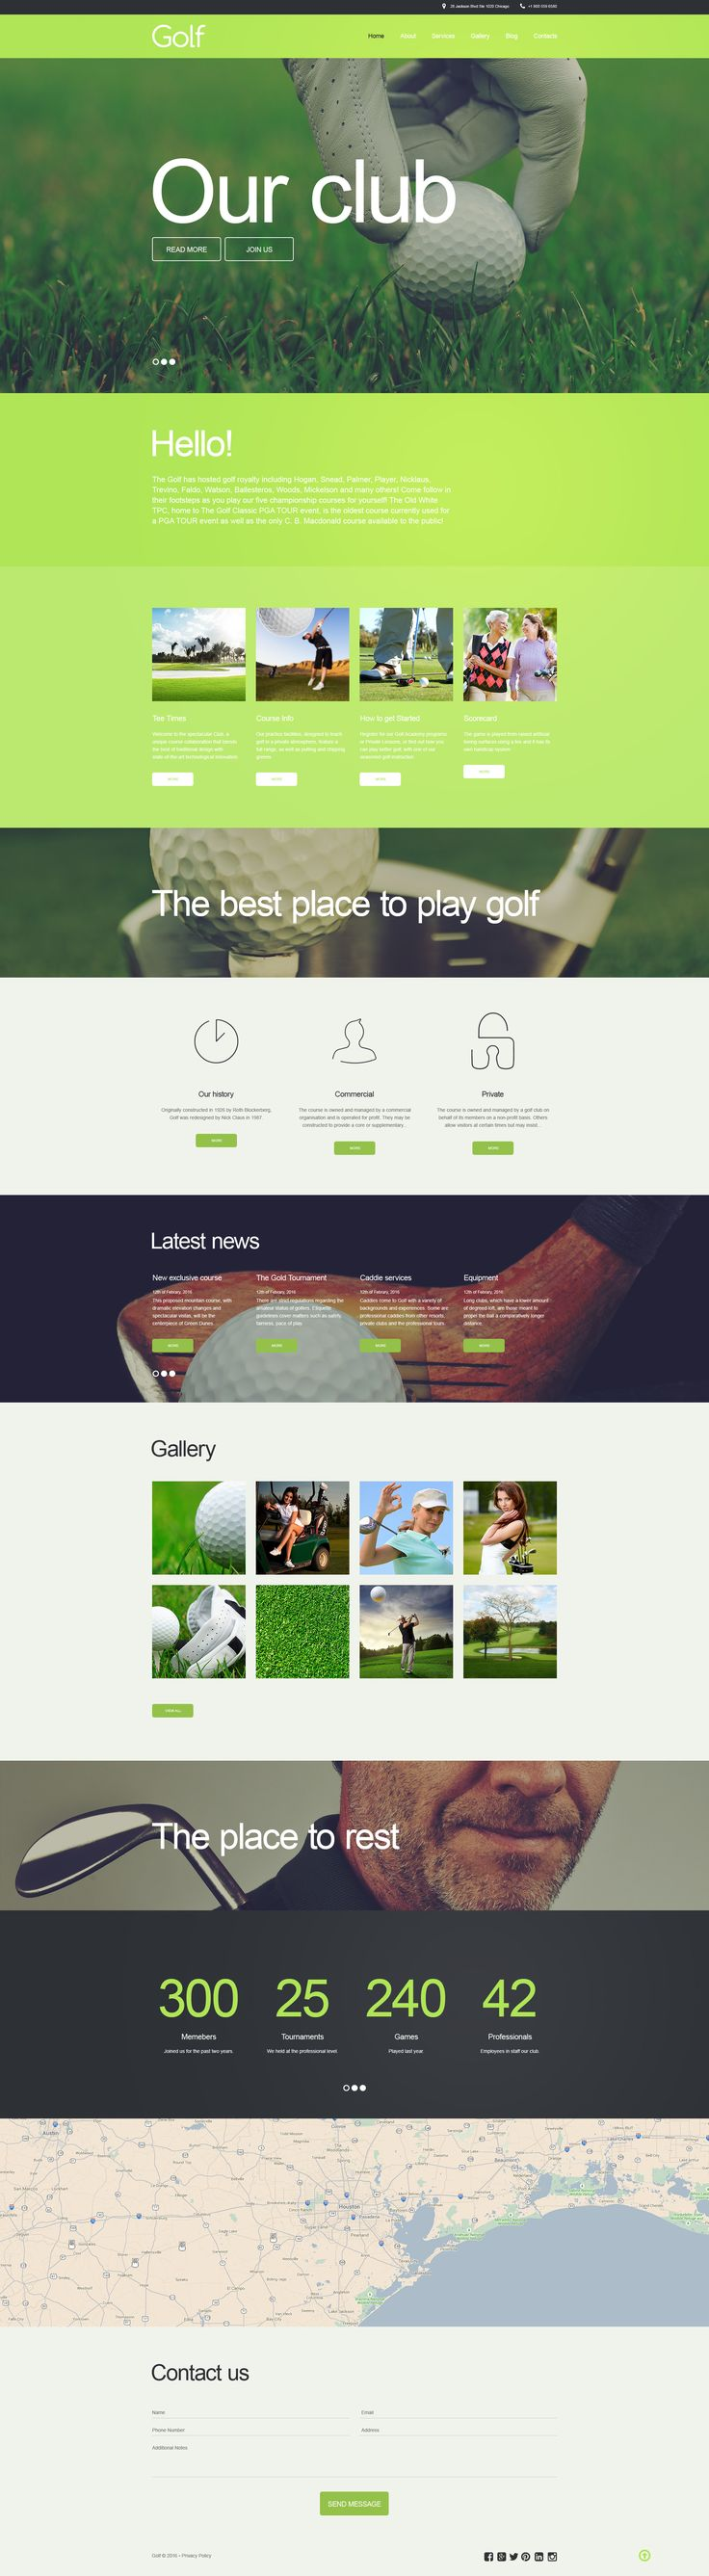 Golf Muse Template #58498 http://www.templatemonster.com/adobe-muse-template/58498.html #sport #clubs